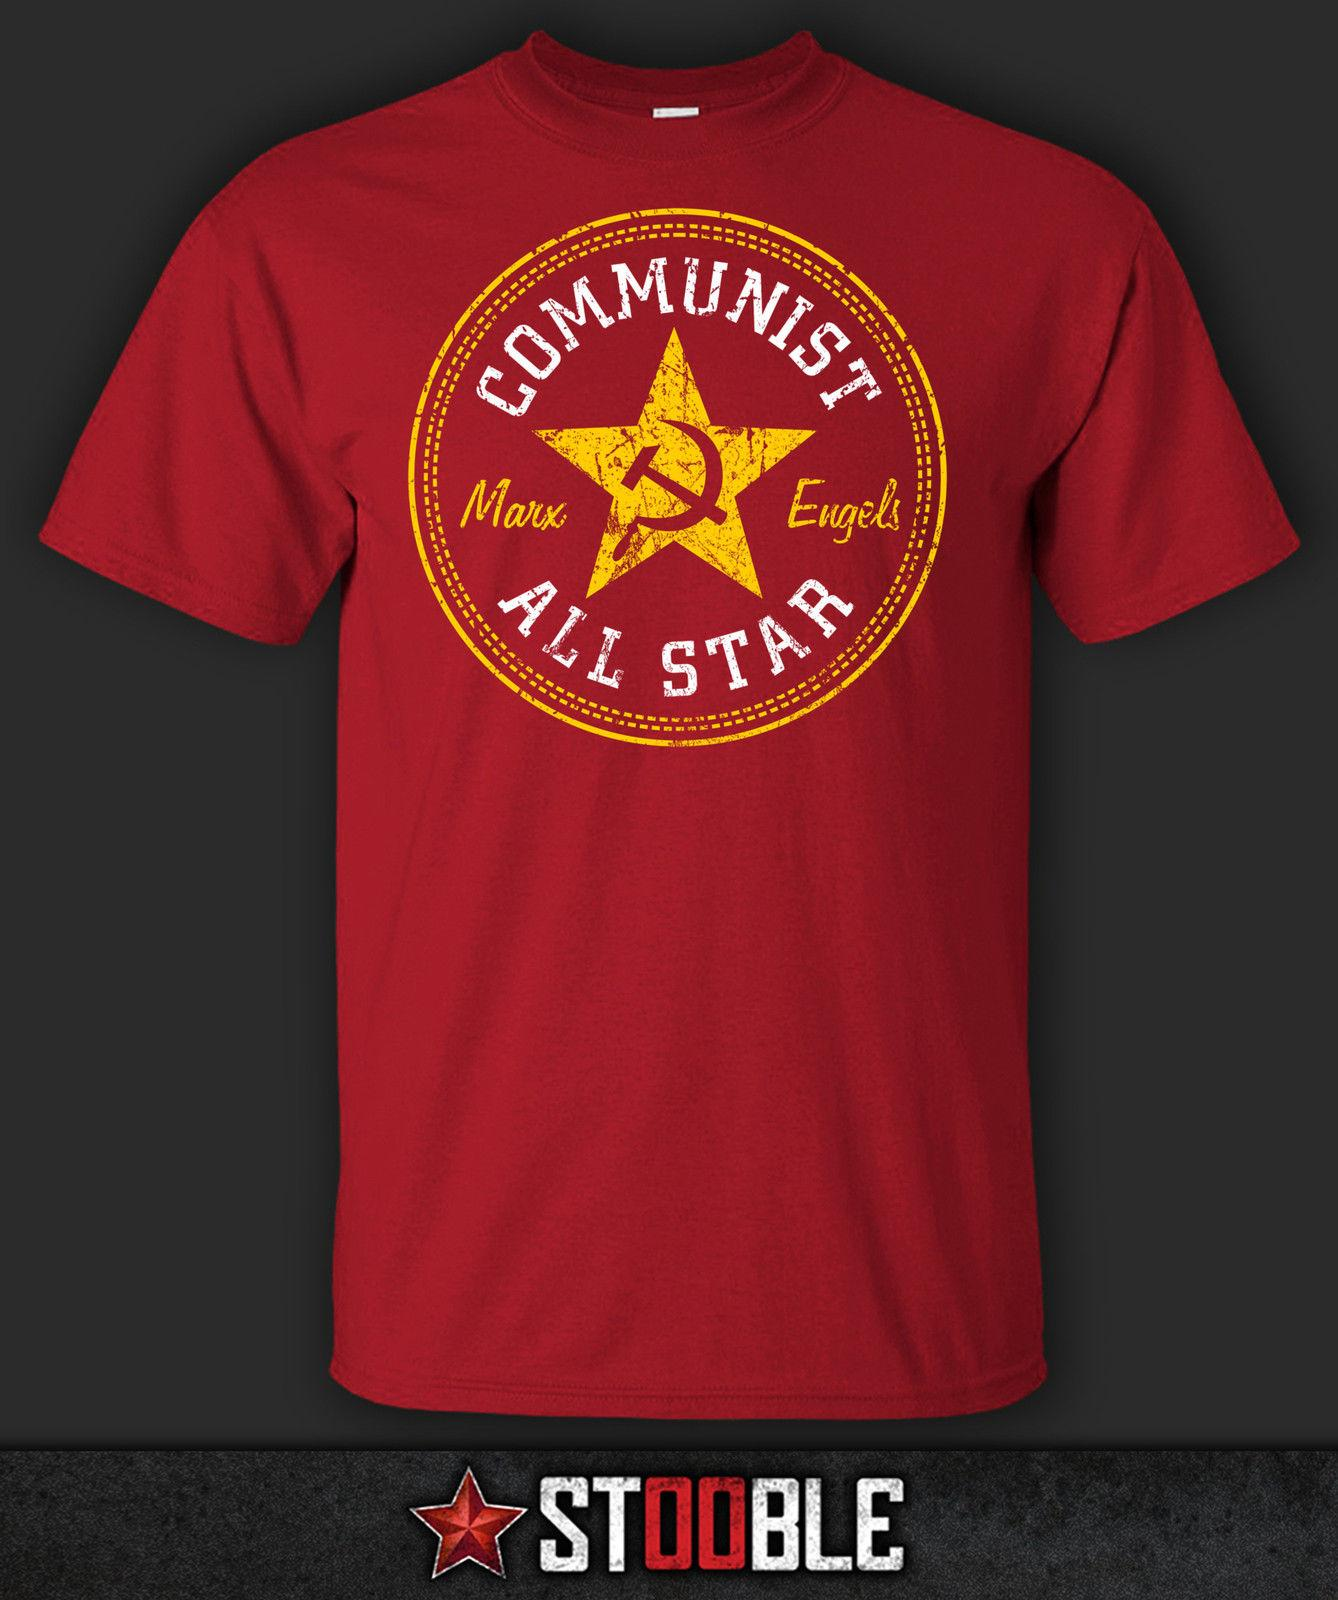 93457ba3 Communist T Shirt Direct From StockistFunny Unisex Casual Tee Gift Fun T  Shirts Online Shirts From Buttonitbadges, $12.96| DHgate.Com